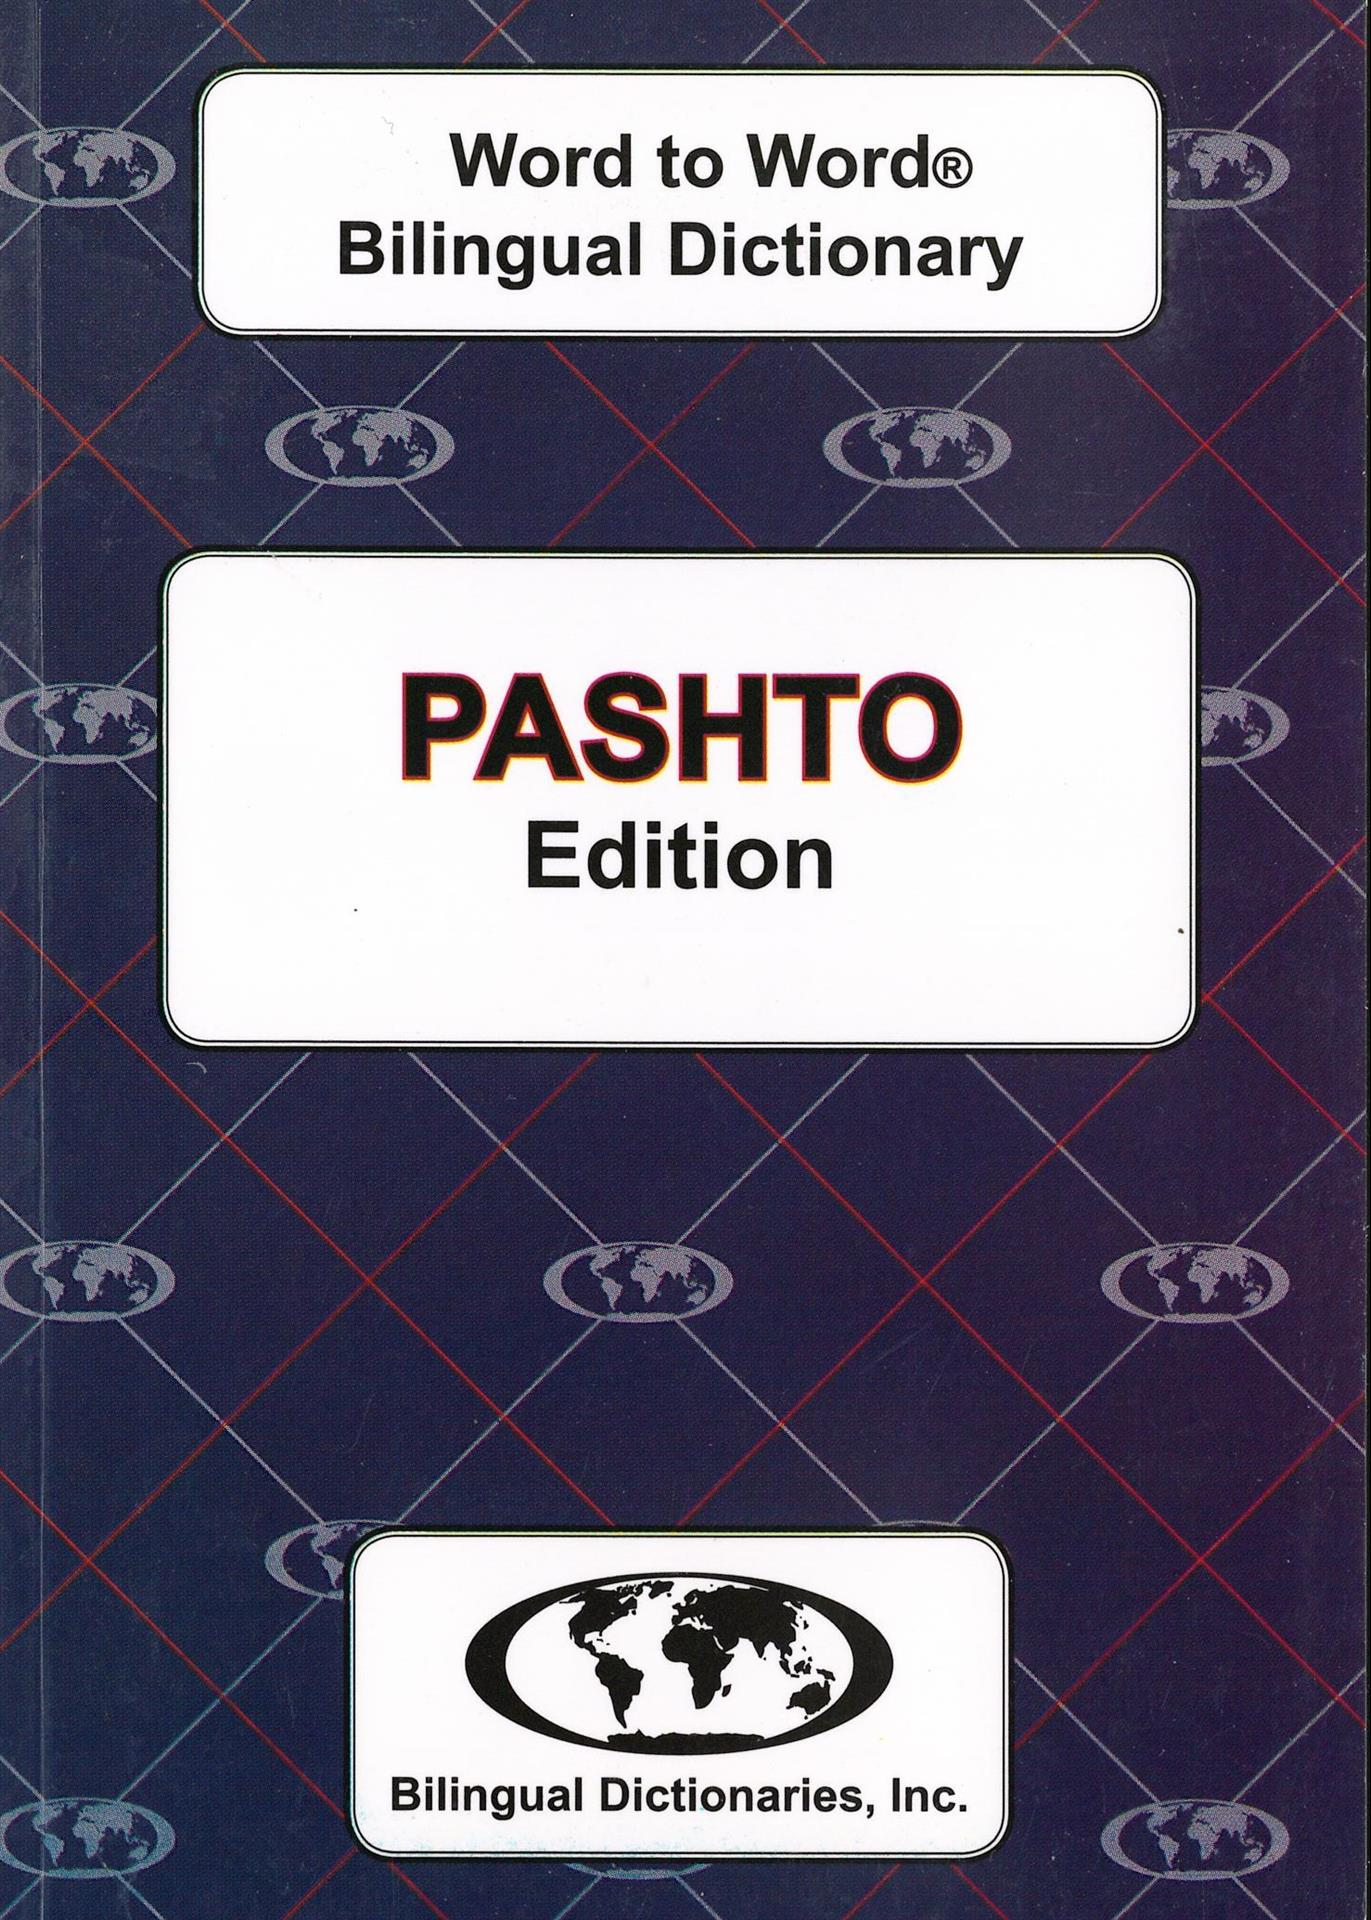 Pashto Word to Word Bilingual Dictionary